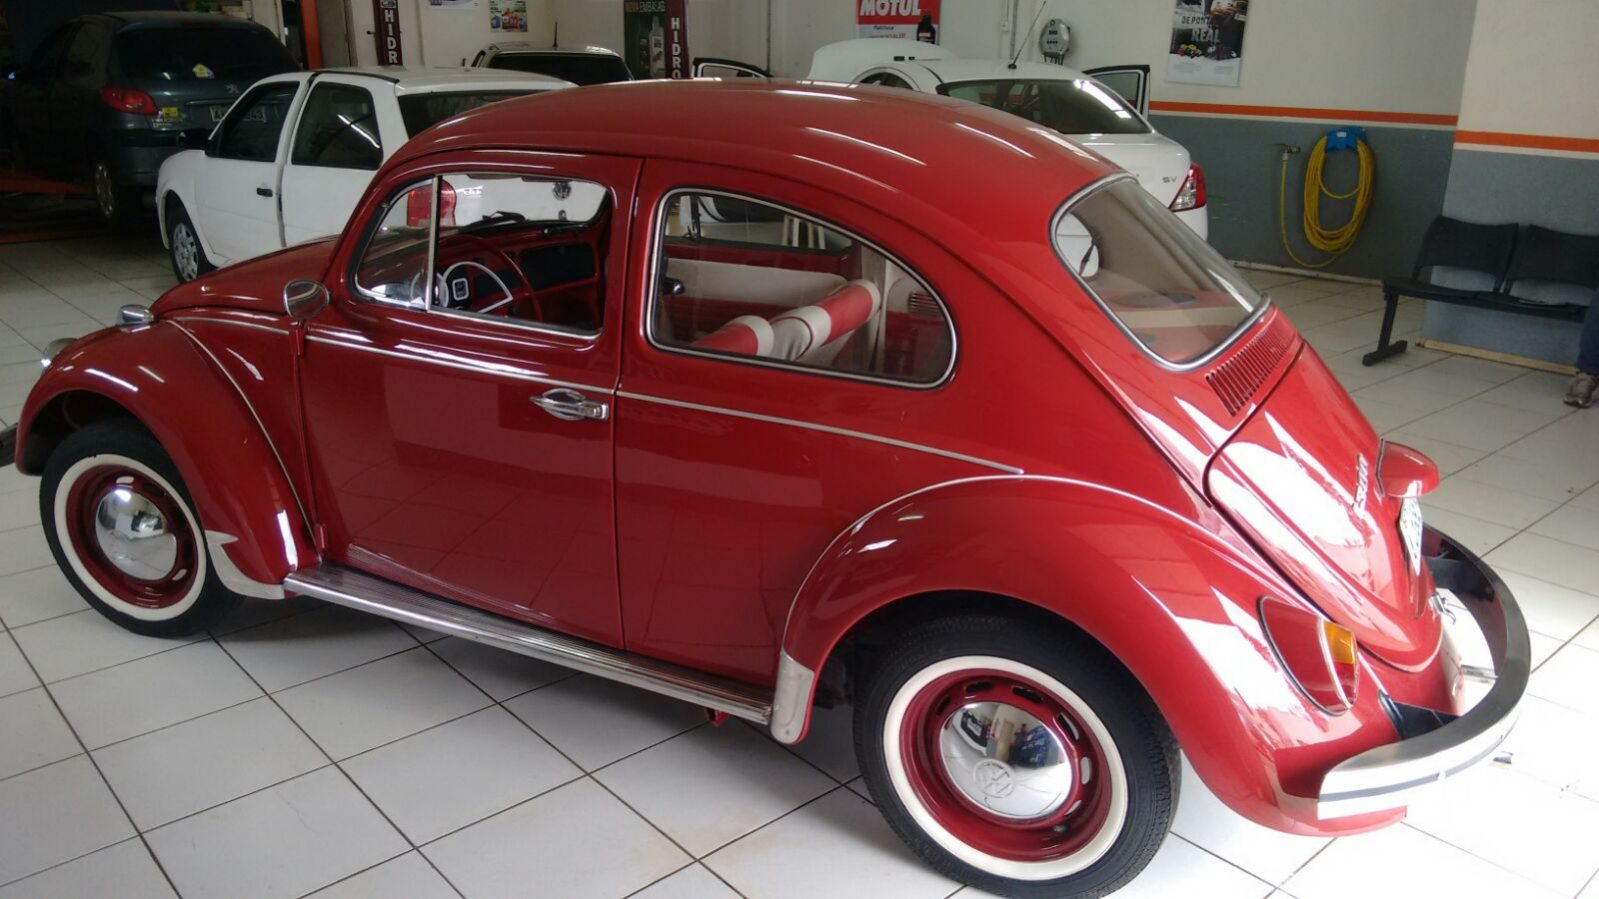 Talento-automotivo-cascavel-pr-vw-fusca-2